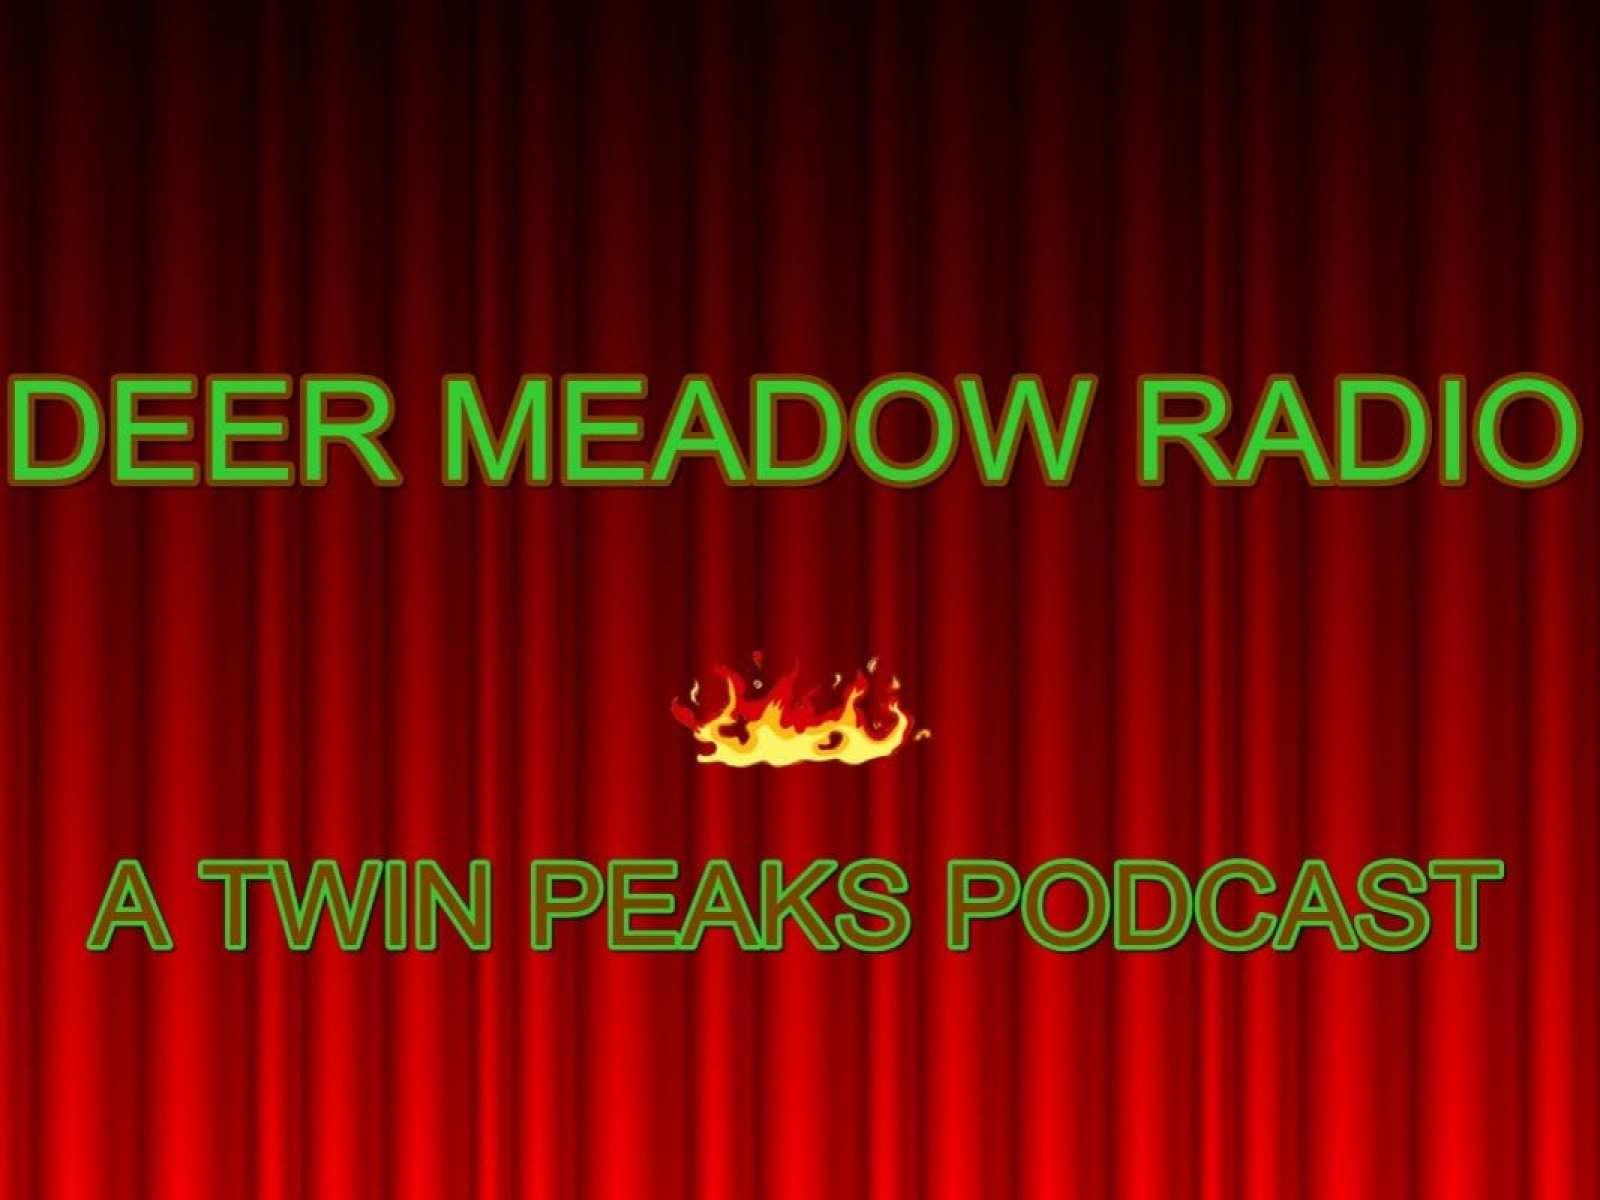 Twin Peaks Podcasts 25yl